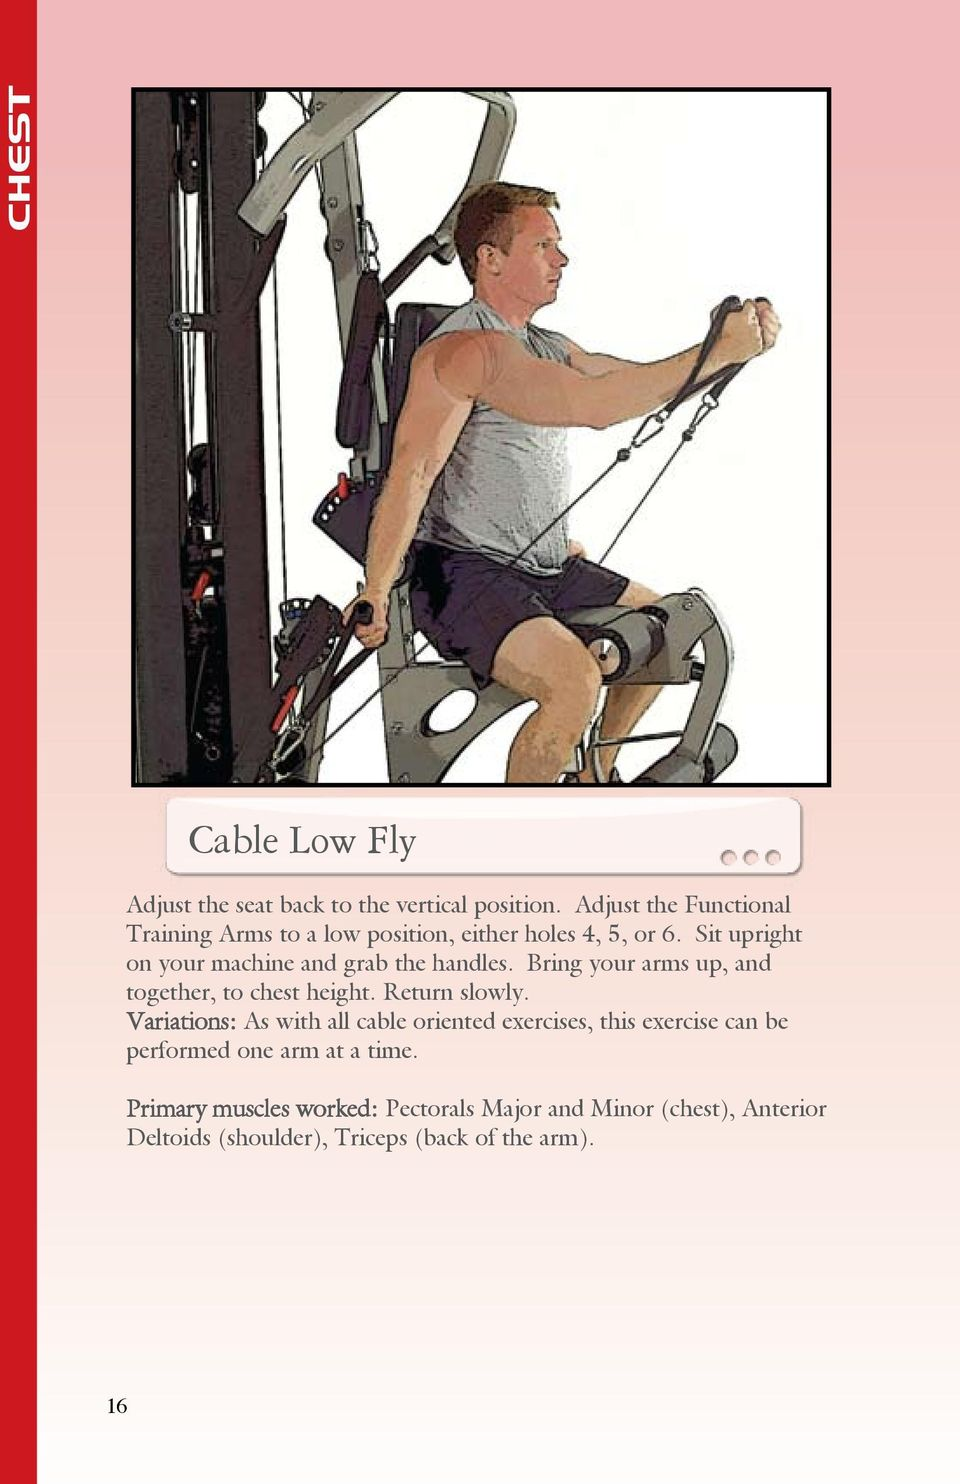 Sit upright on your machine and grab the handles. Bring your arms up, and together, to chest height. Return slowly.